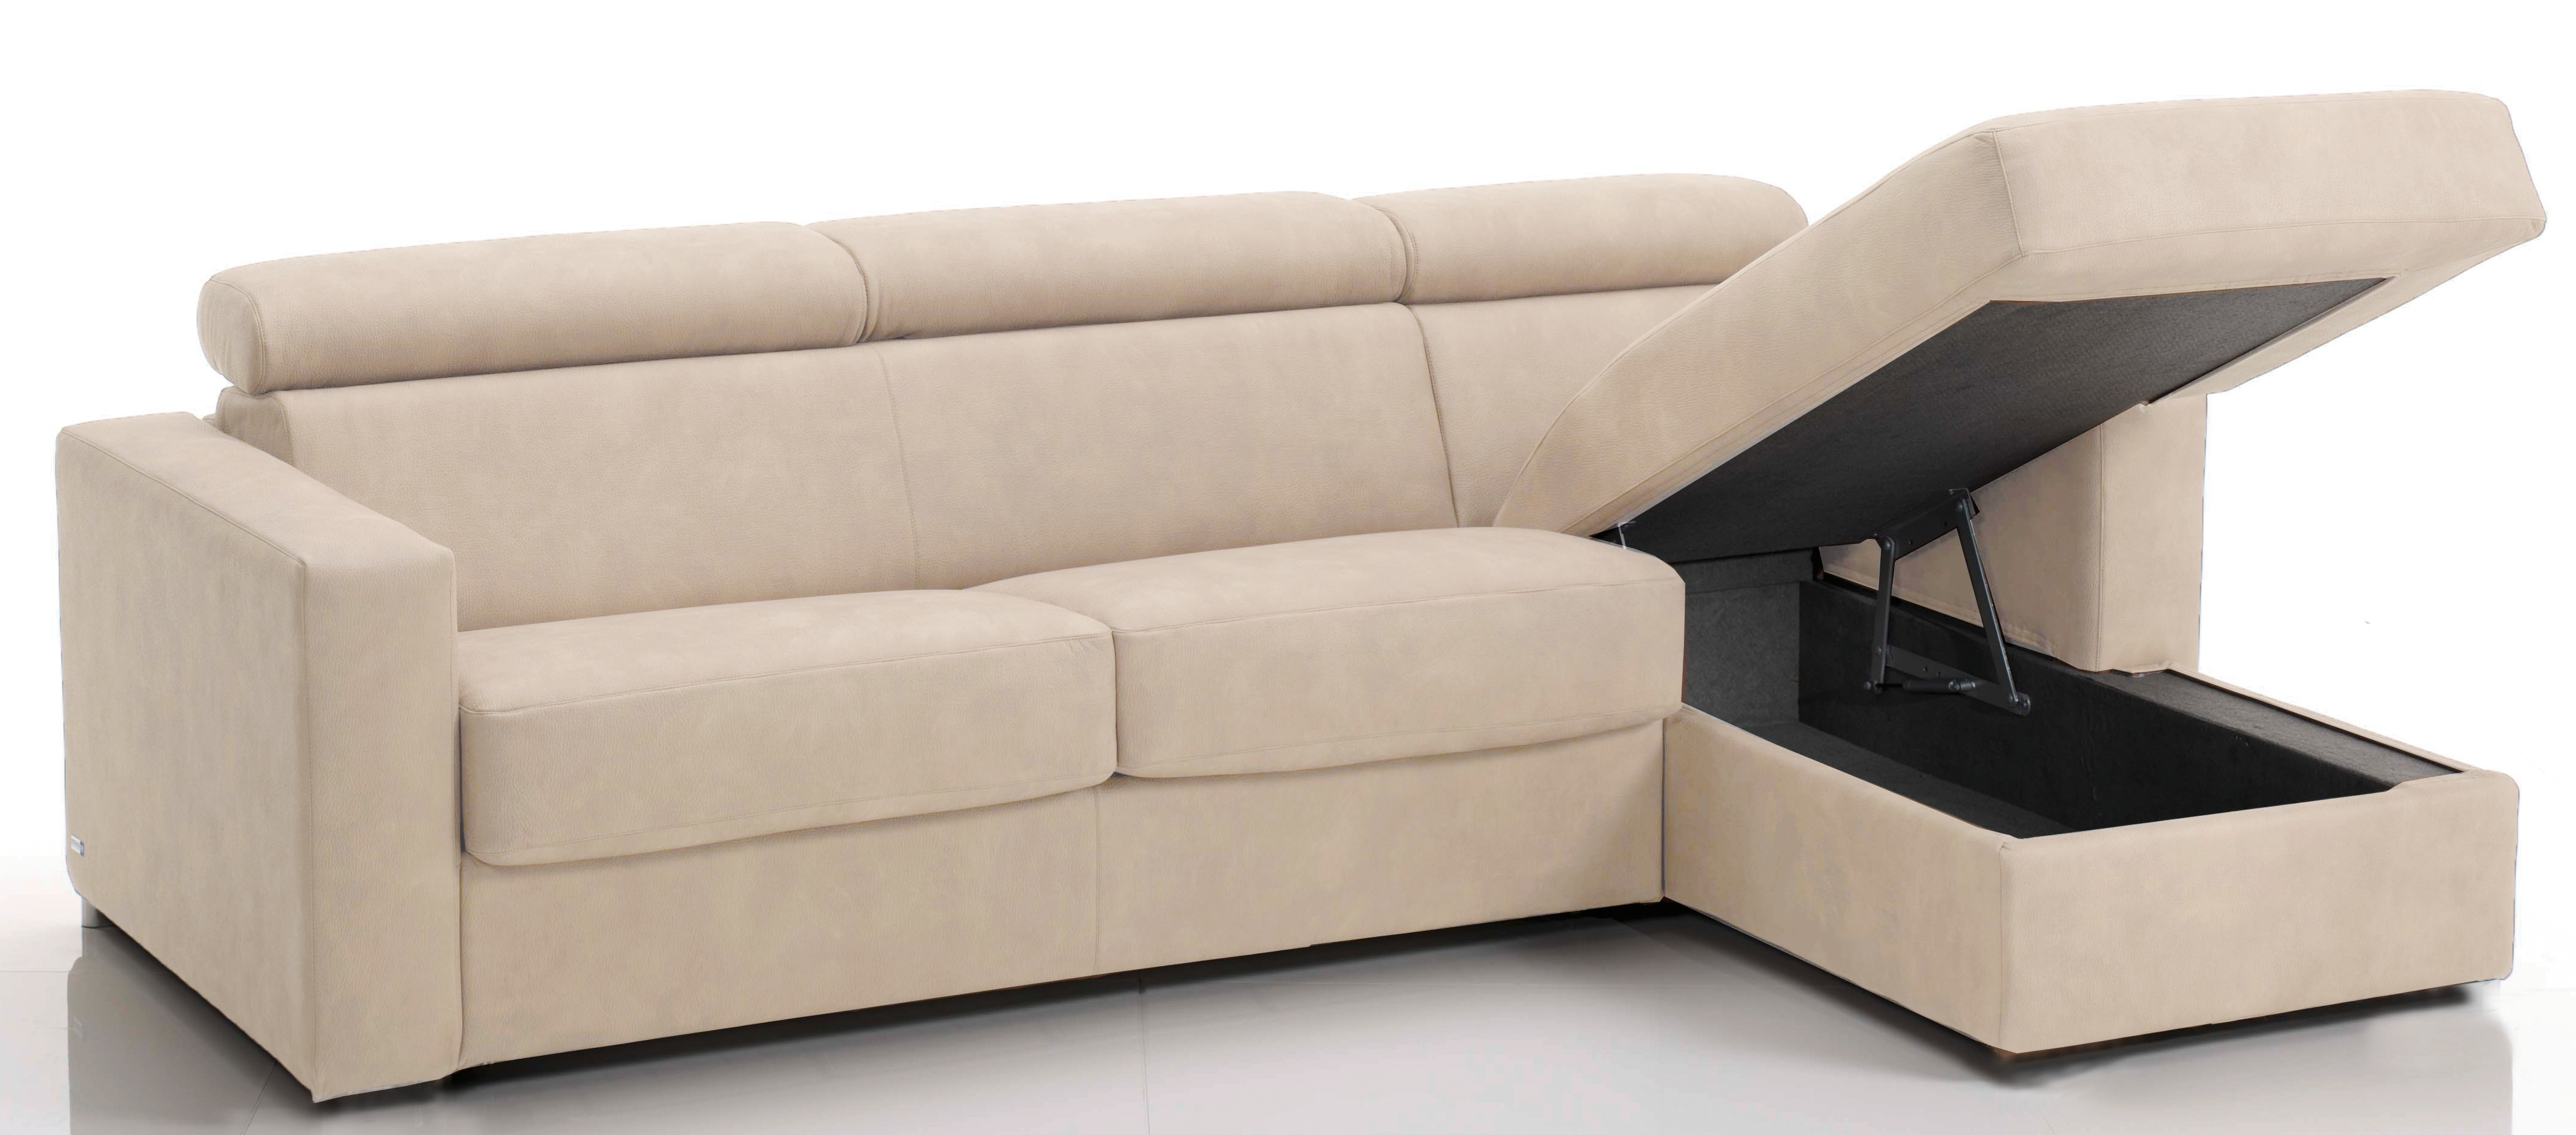 Canap convertible beige royal sofa id e de canap et for Canape convertible 2 metres